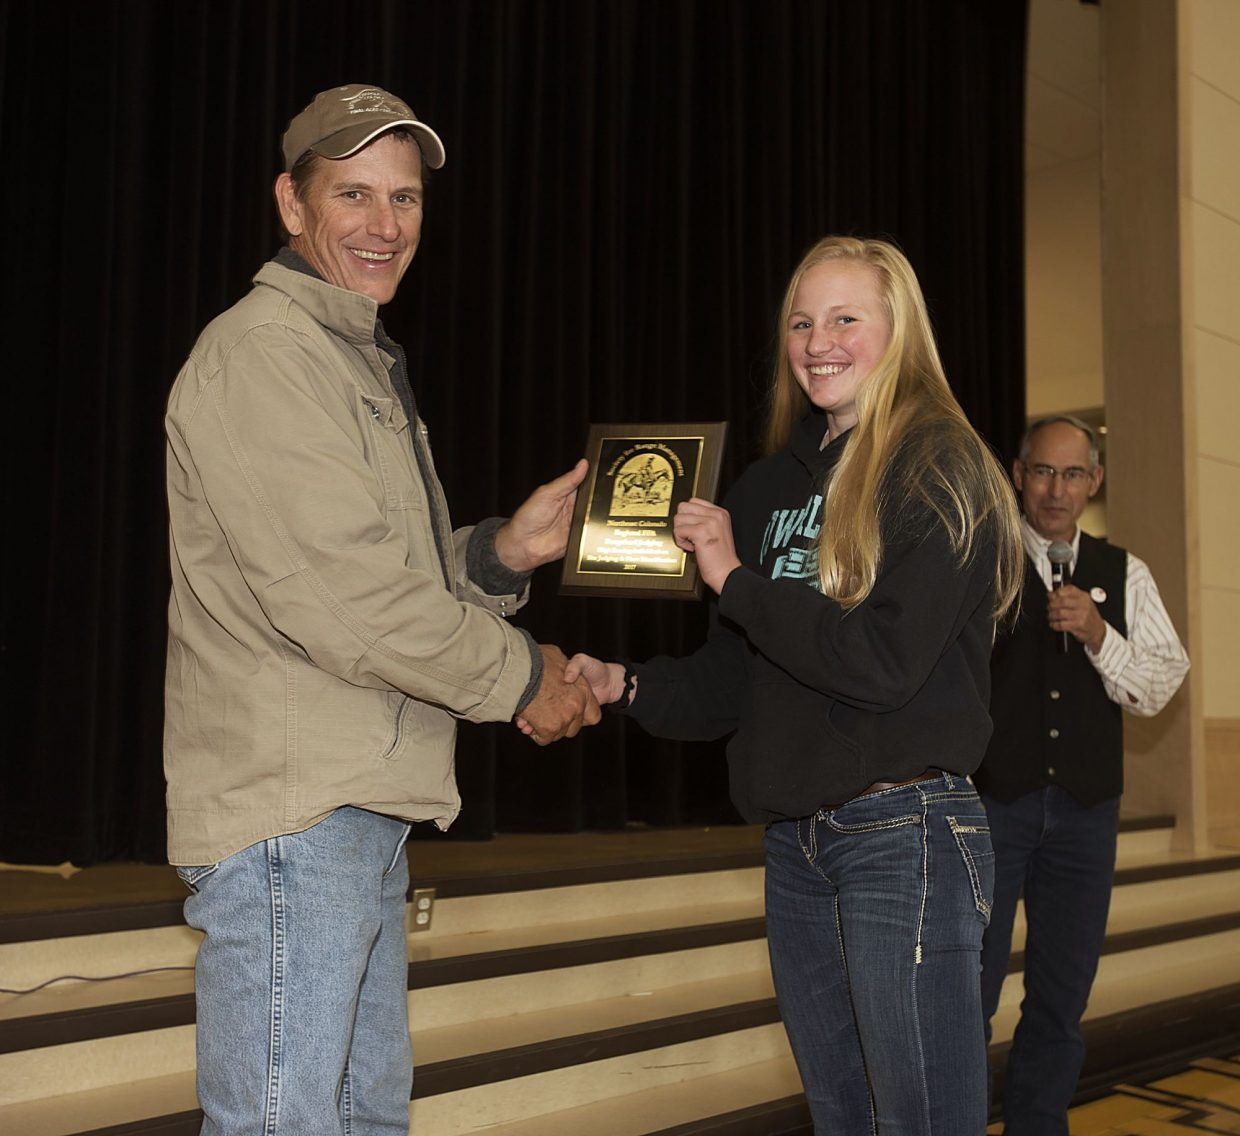 Overall high-scoring individual, Ainlsey Powell from the Merino FFA chapter, receives her award from Colorado Society for Range Management president Josh Saunders. The plaque was sponsored by the Colorado Society for Range Management.